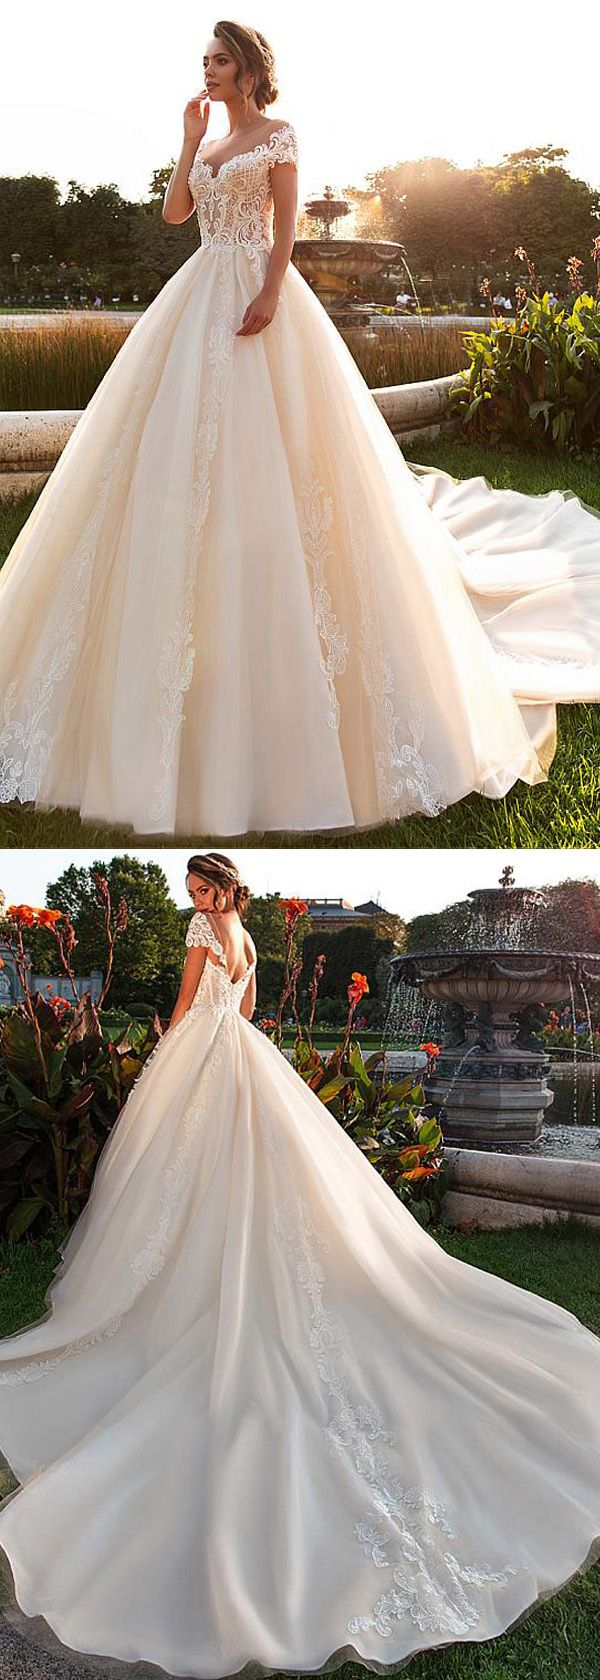 [200.50] Delicate Tulle Scoop Neckline A-line Wedding Dress With Beaded Lace Appliques #weddingdress